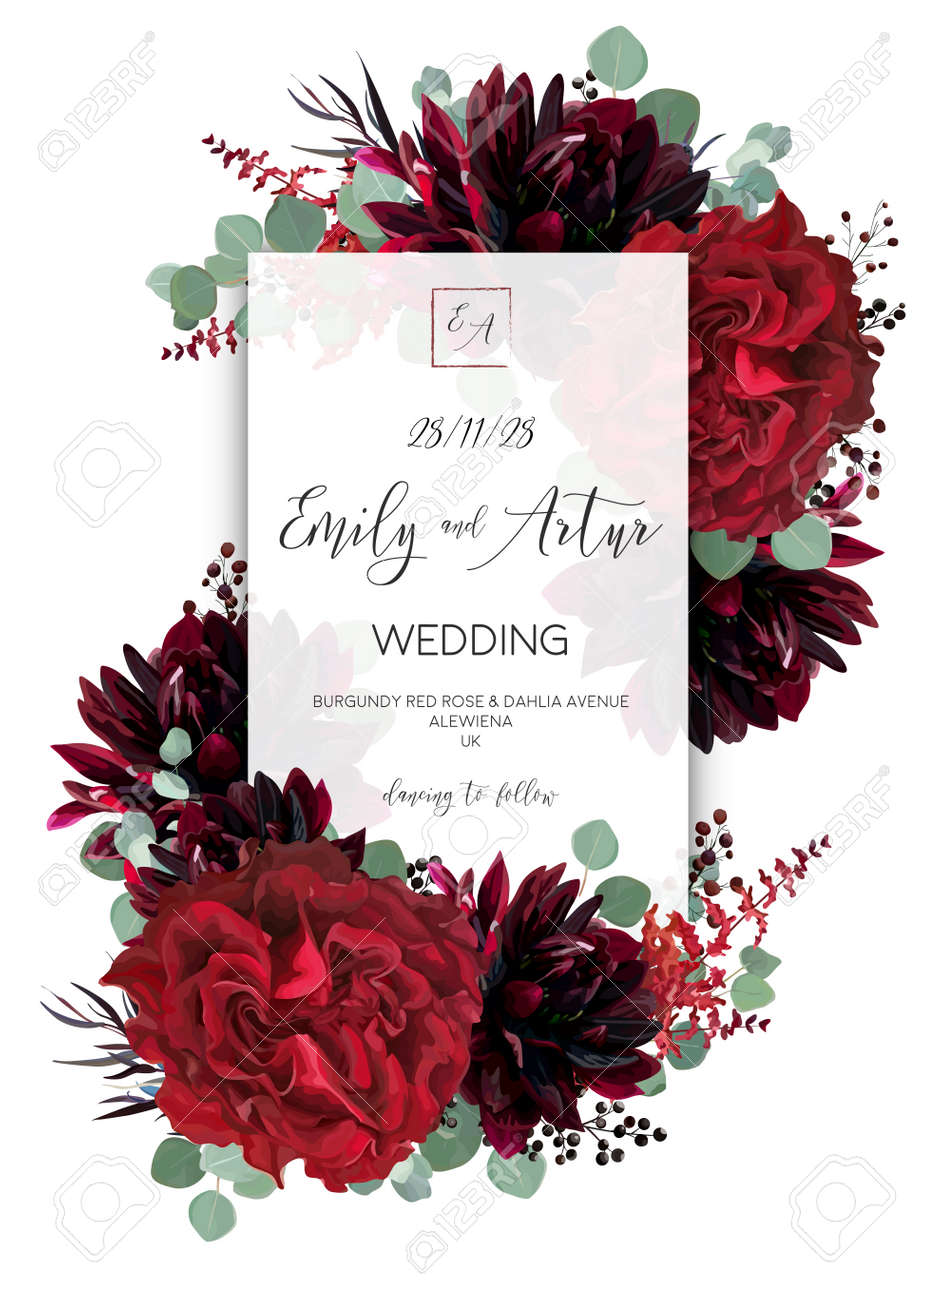 Wedding Vector Floral Invite Invitation Save The Date Card Design